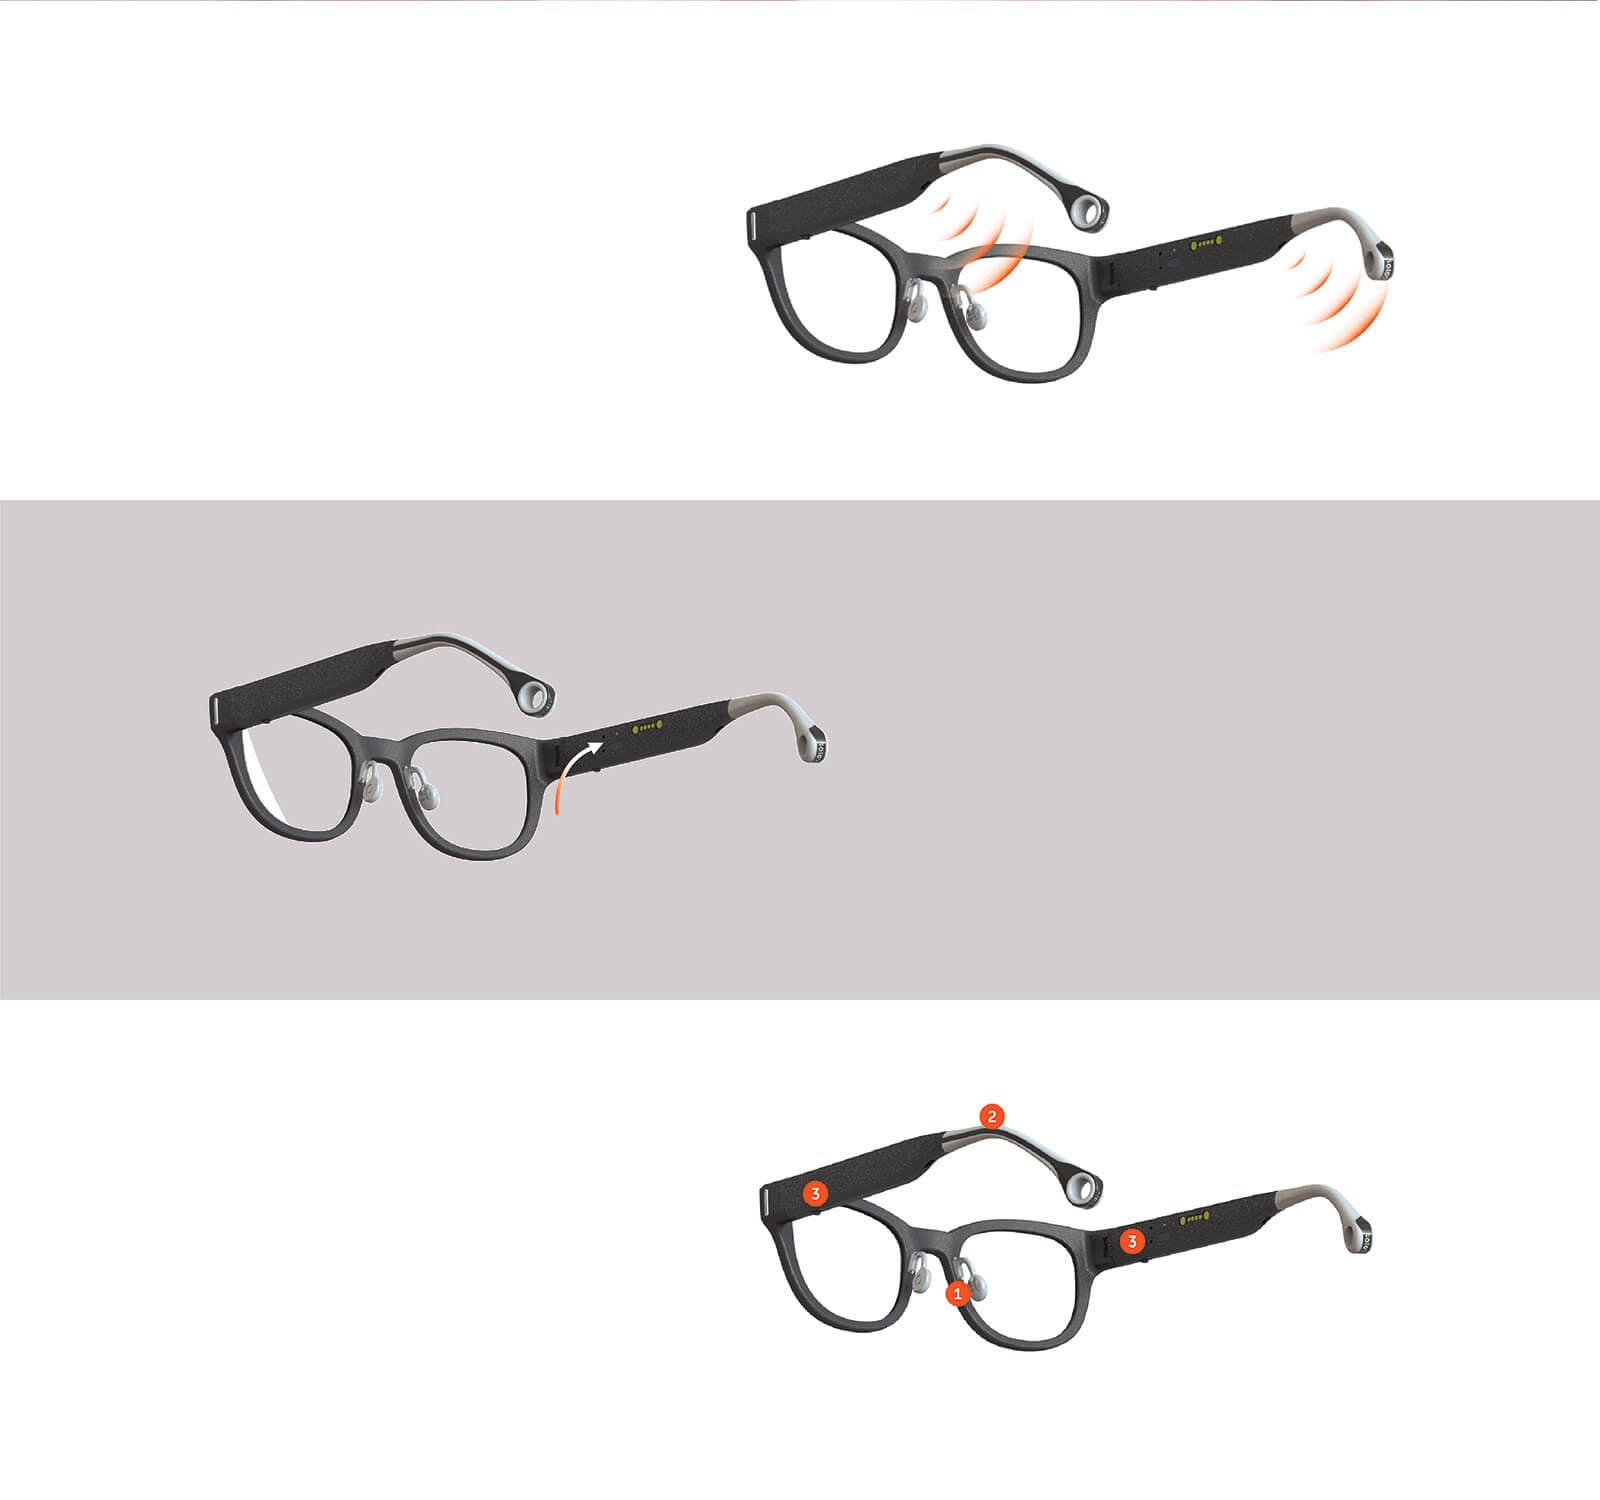 3 Solos glasses features